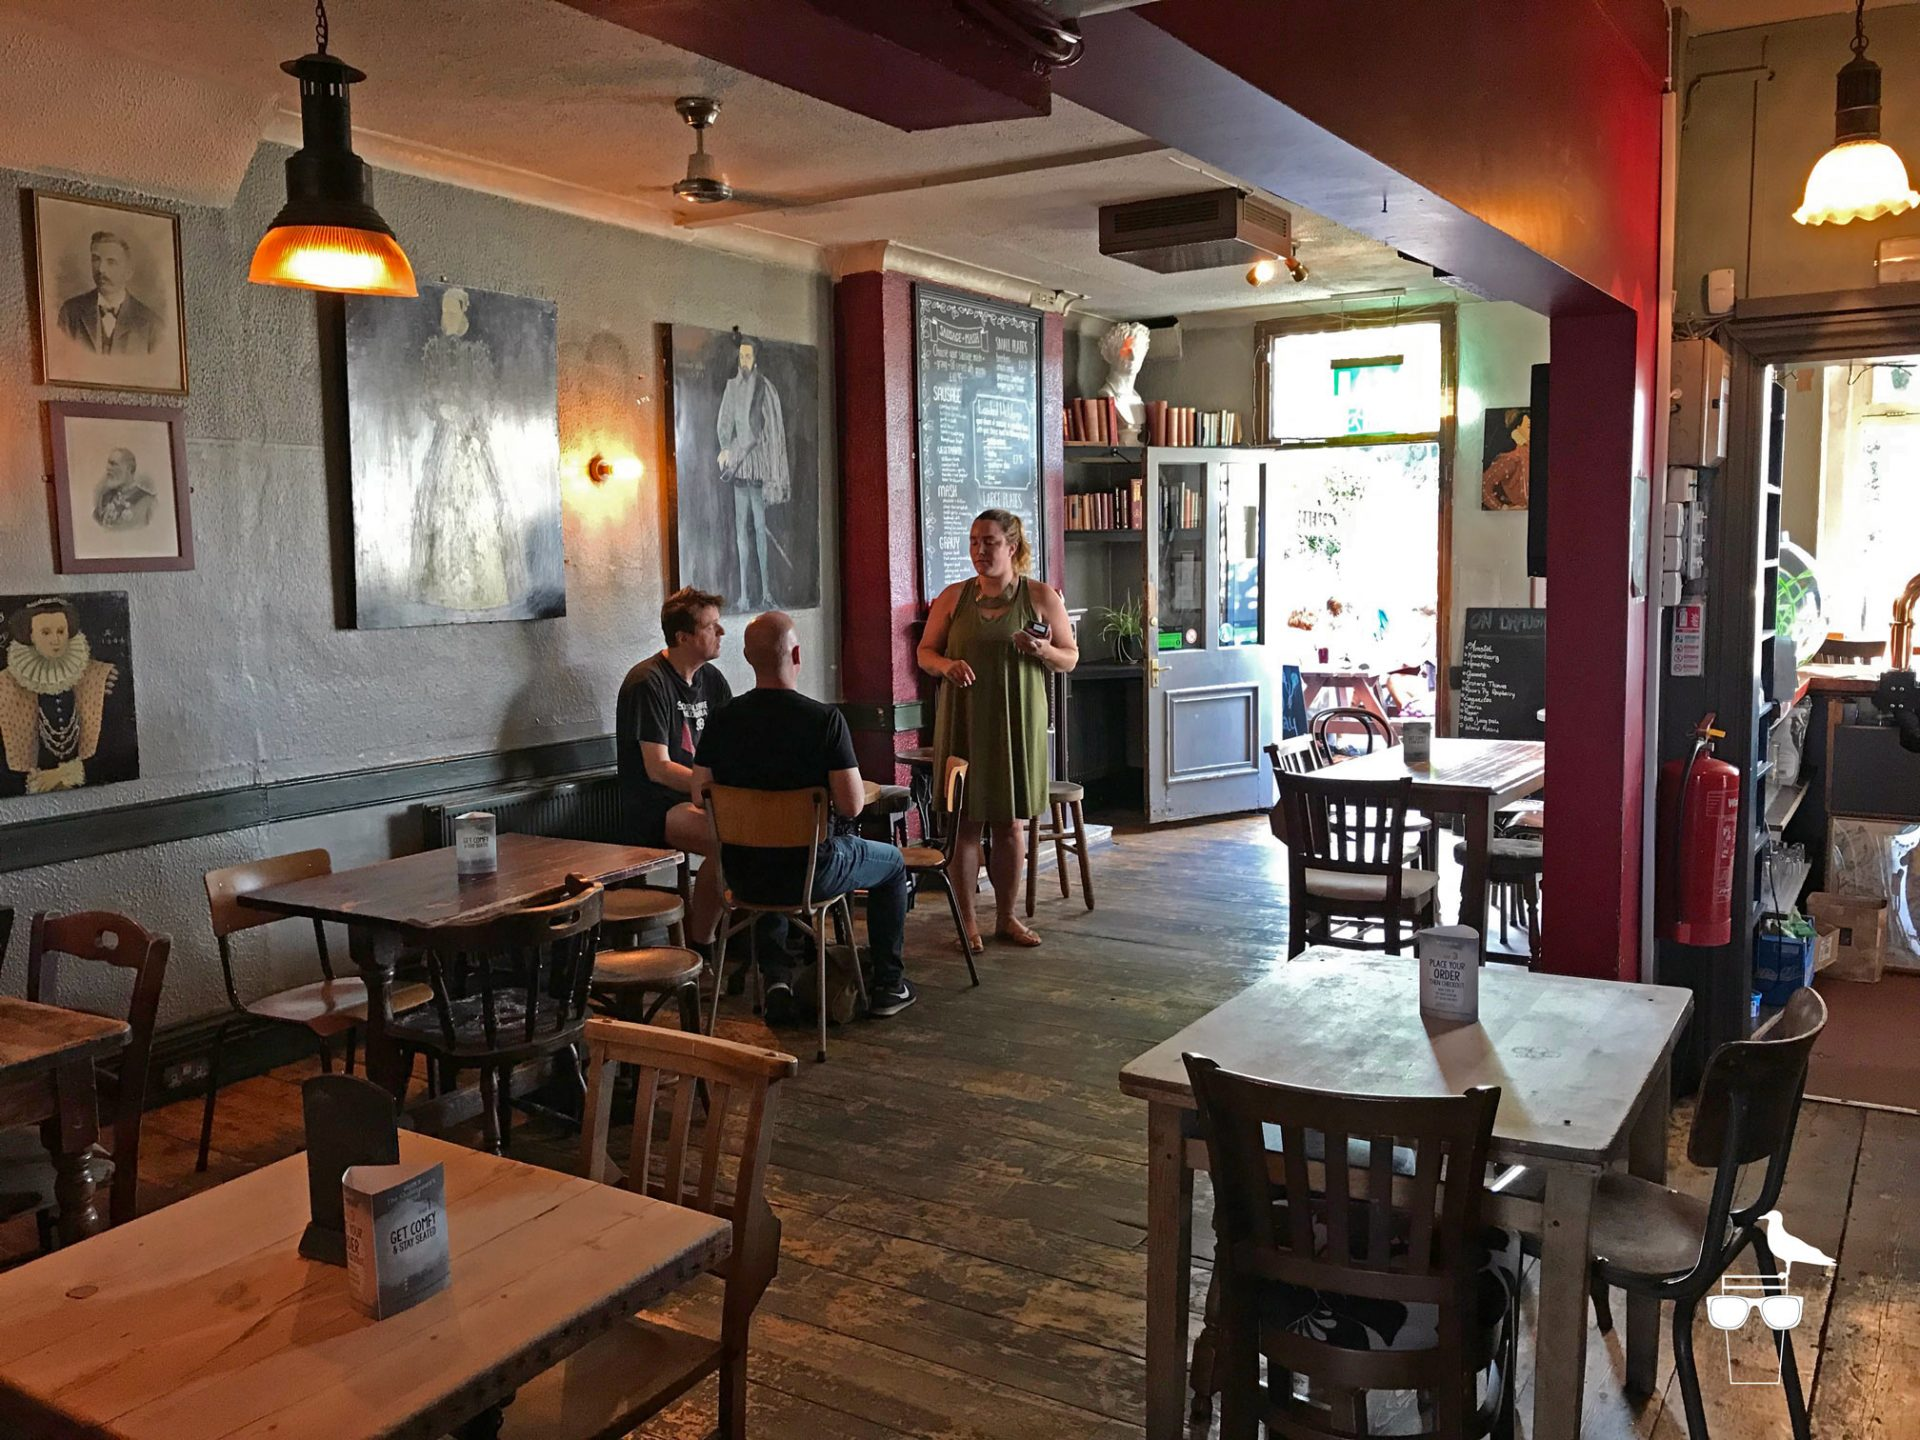 shakespeares-head-pub-brighton-inside-tables-and-chairs